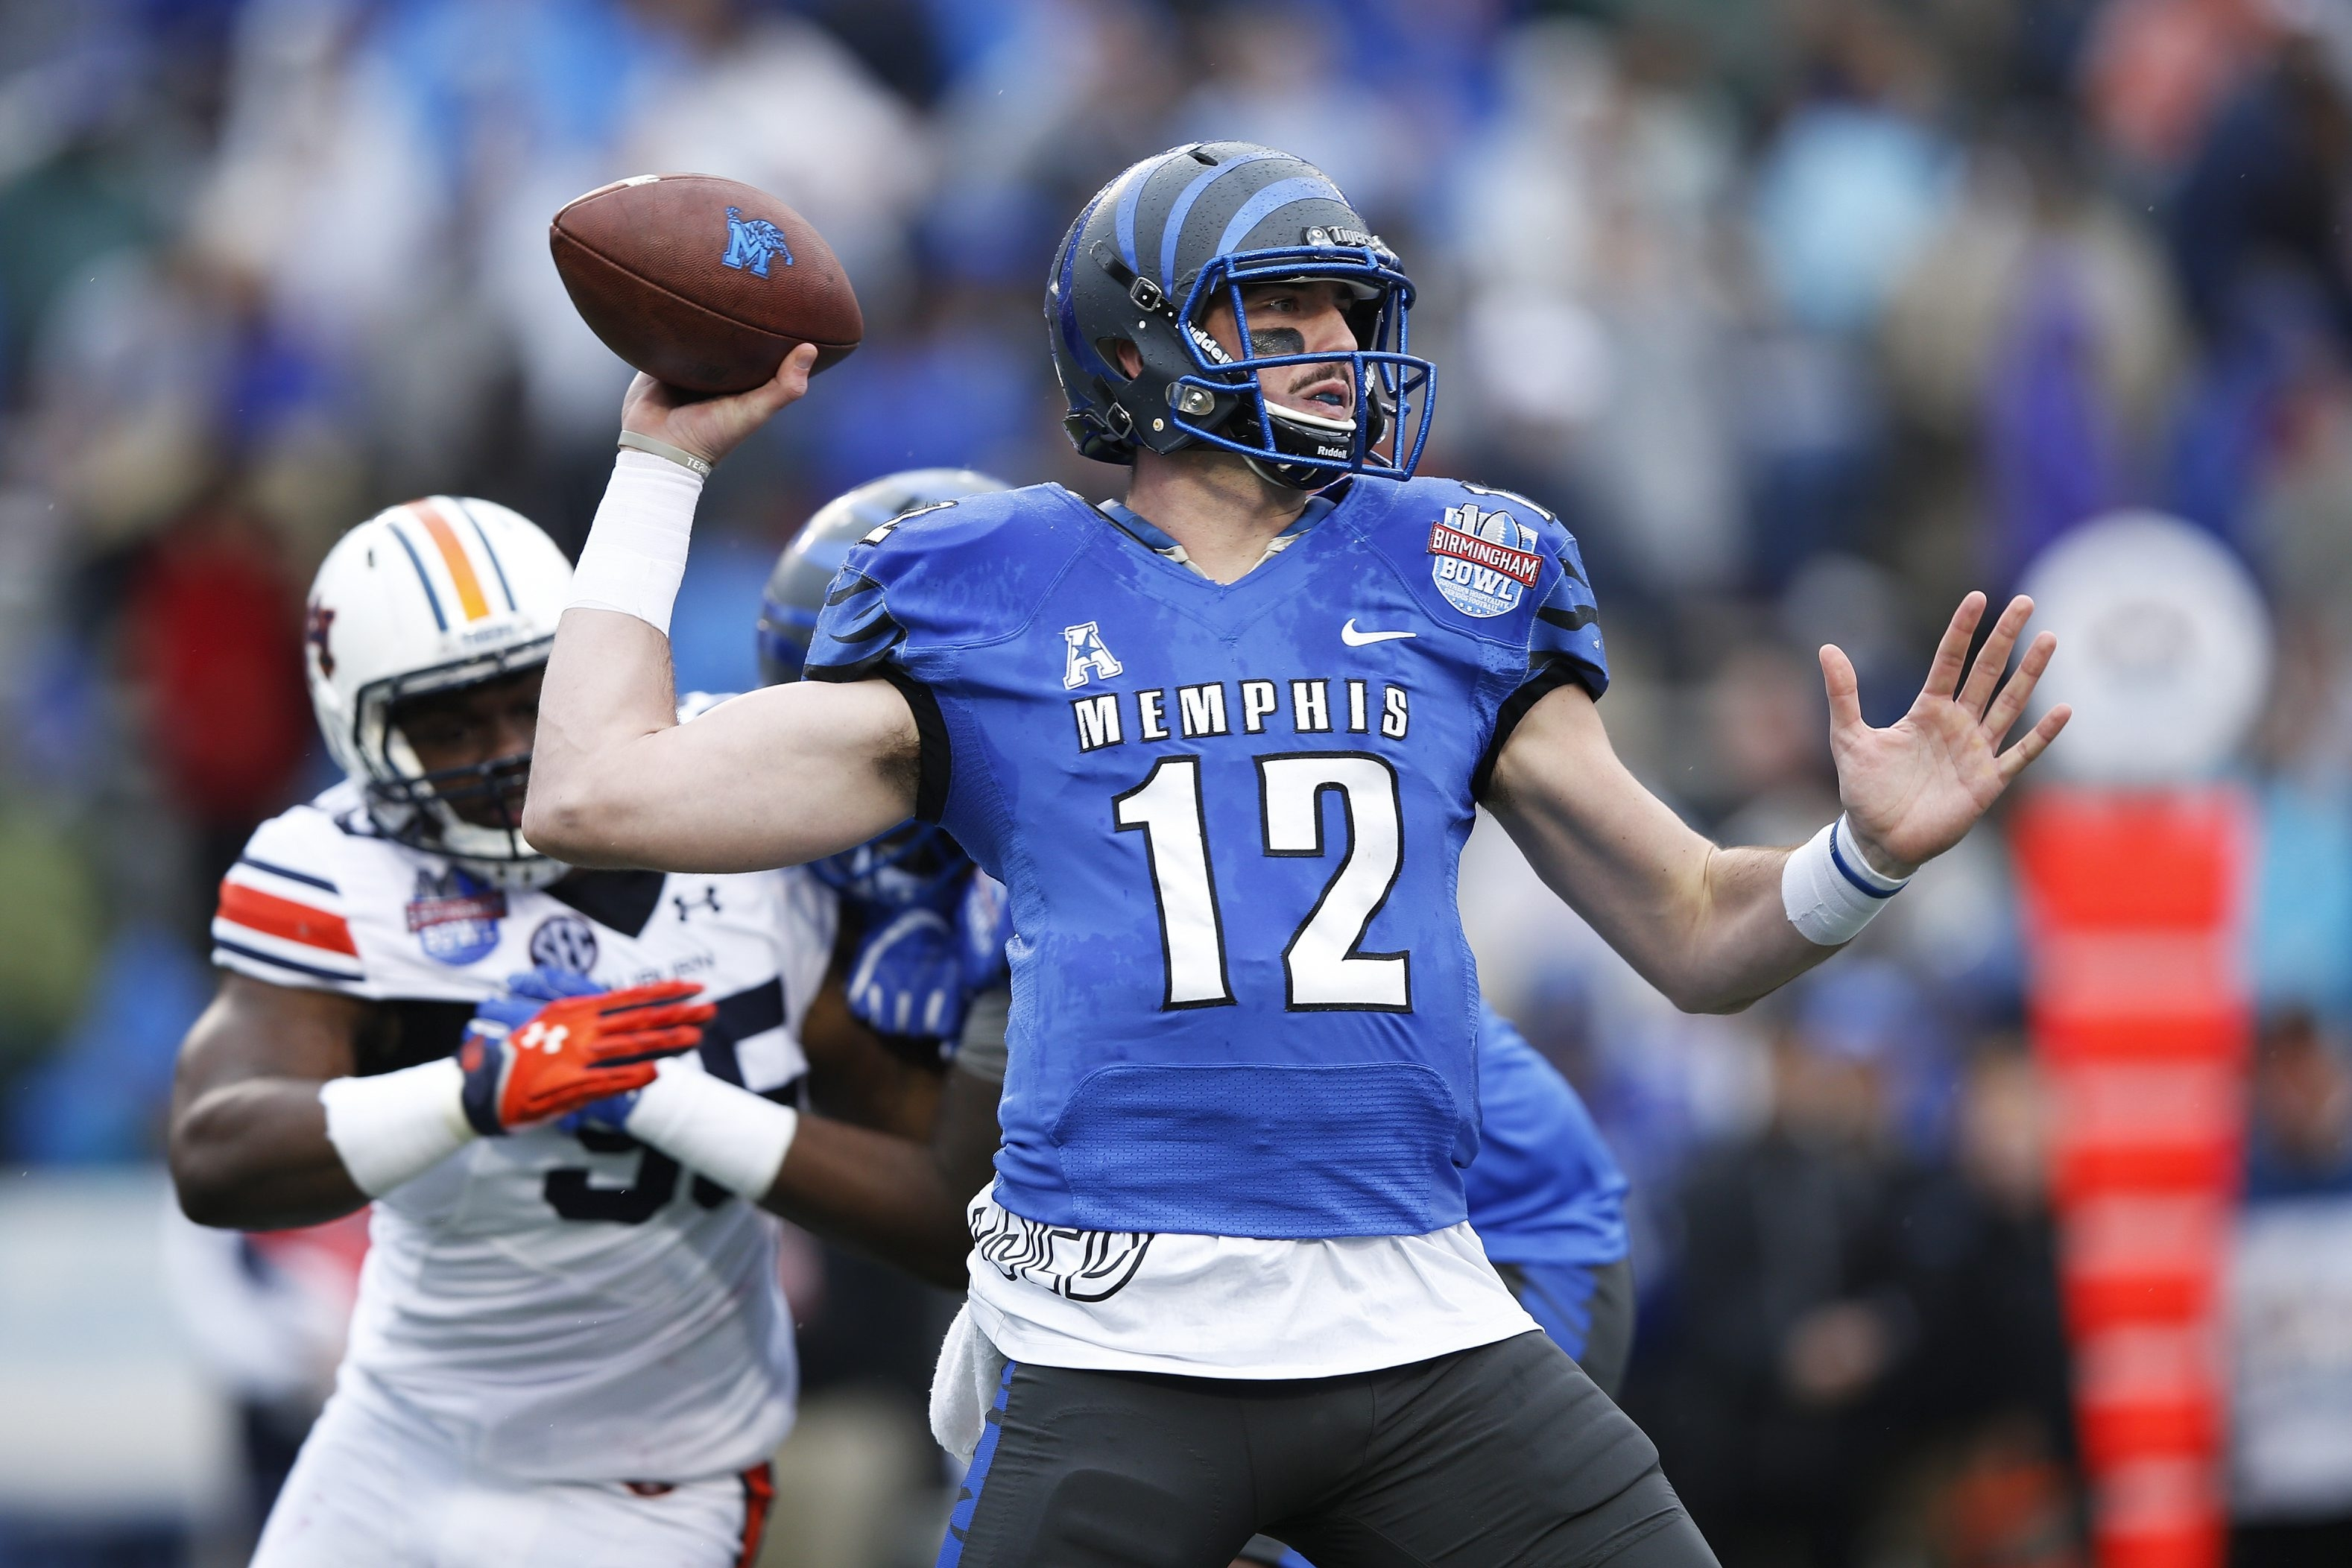 Memphis quarterback Paxton Lynch has impressed scouts with his accuracy. (Getty Images)